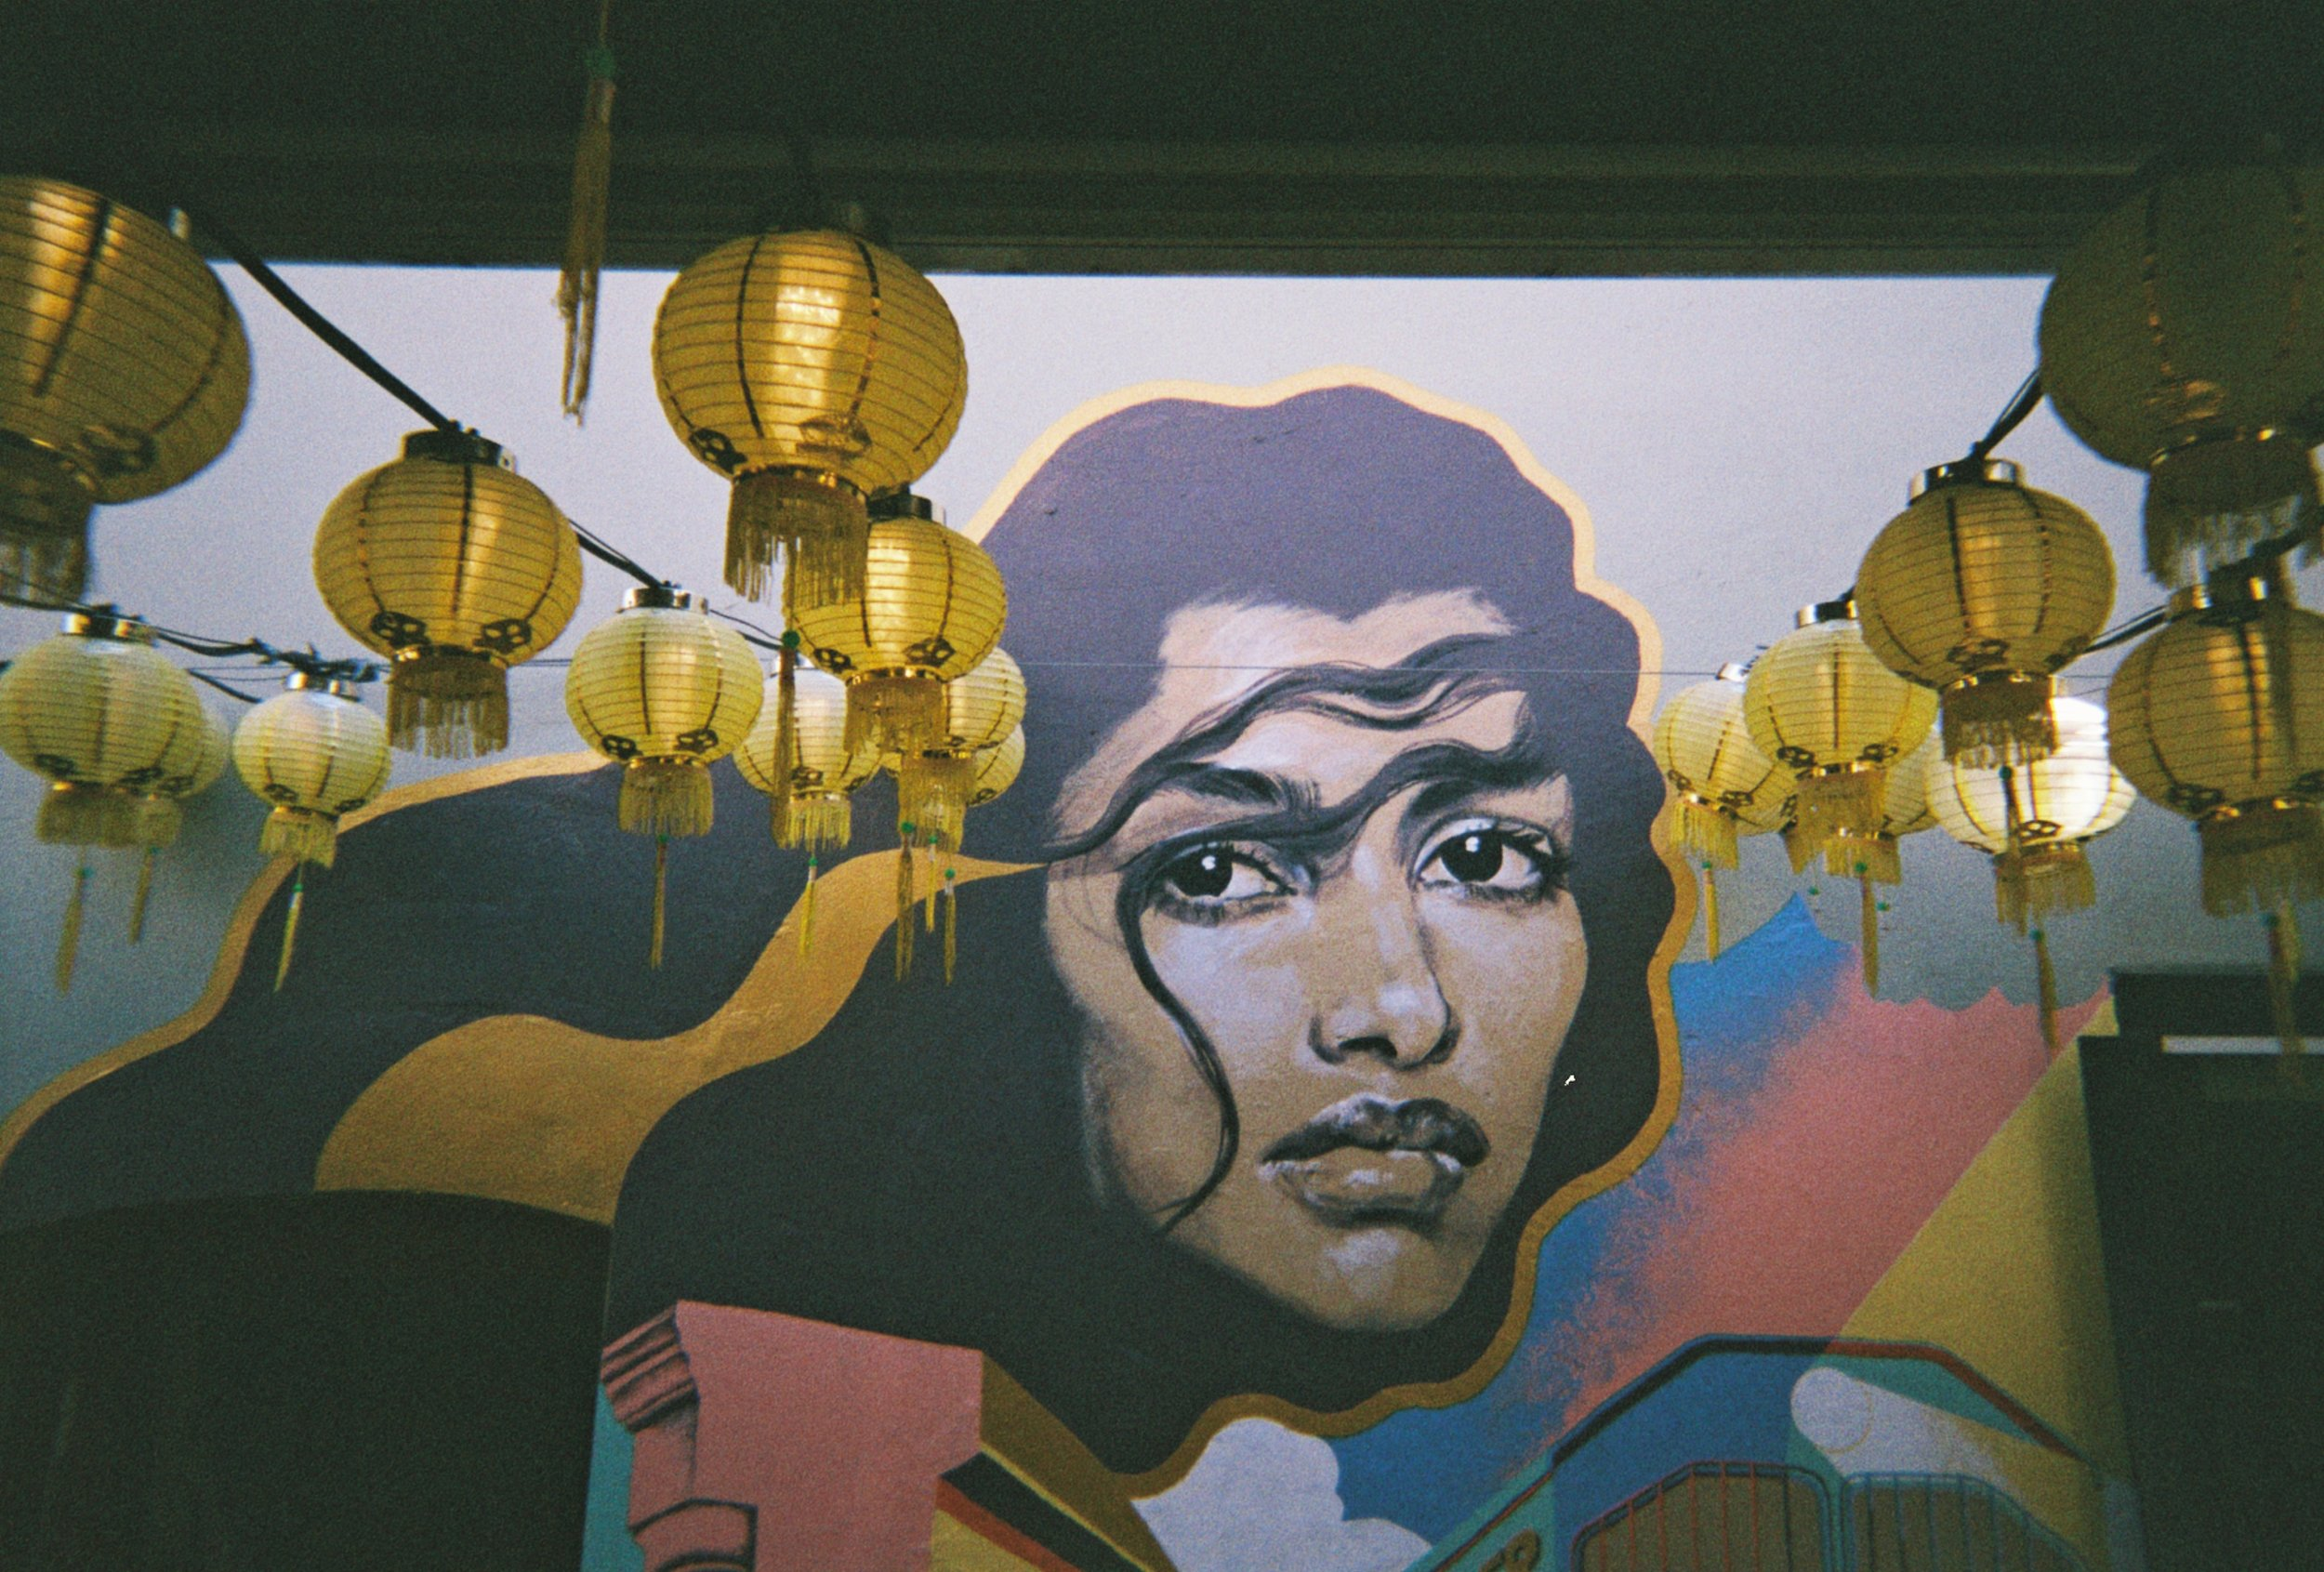 LOOKING FOR A MURAL ARTIST TO CREATE AN ARTWORK FOR YOUR SPACE? - OUR SPECIALIST TEAM CAN HELP!